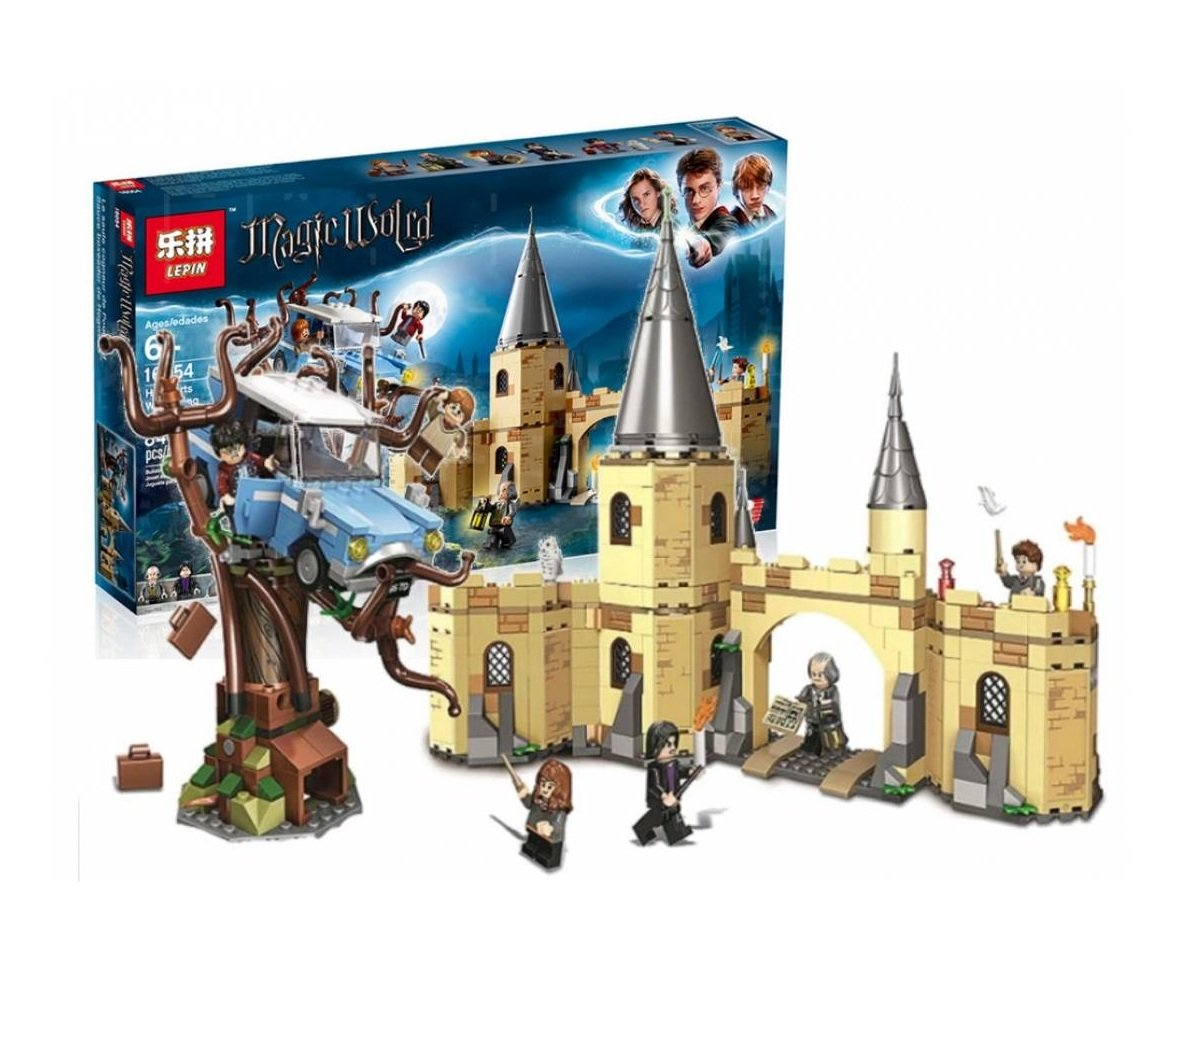 16054 Hogwarts Whomping Willow Harry Potter 75953 Building Lego Blocks Toys